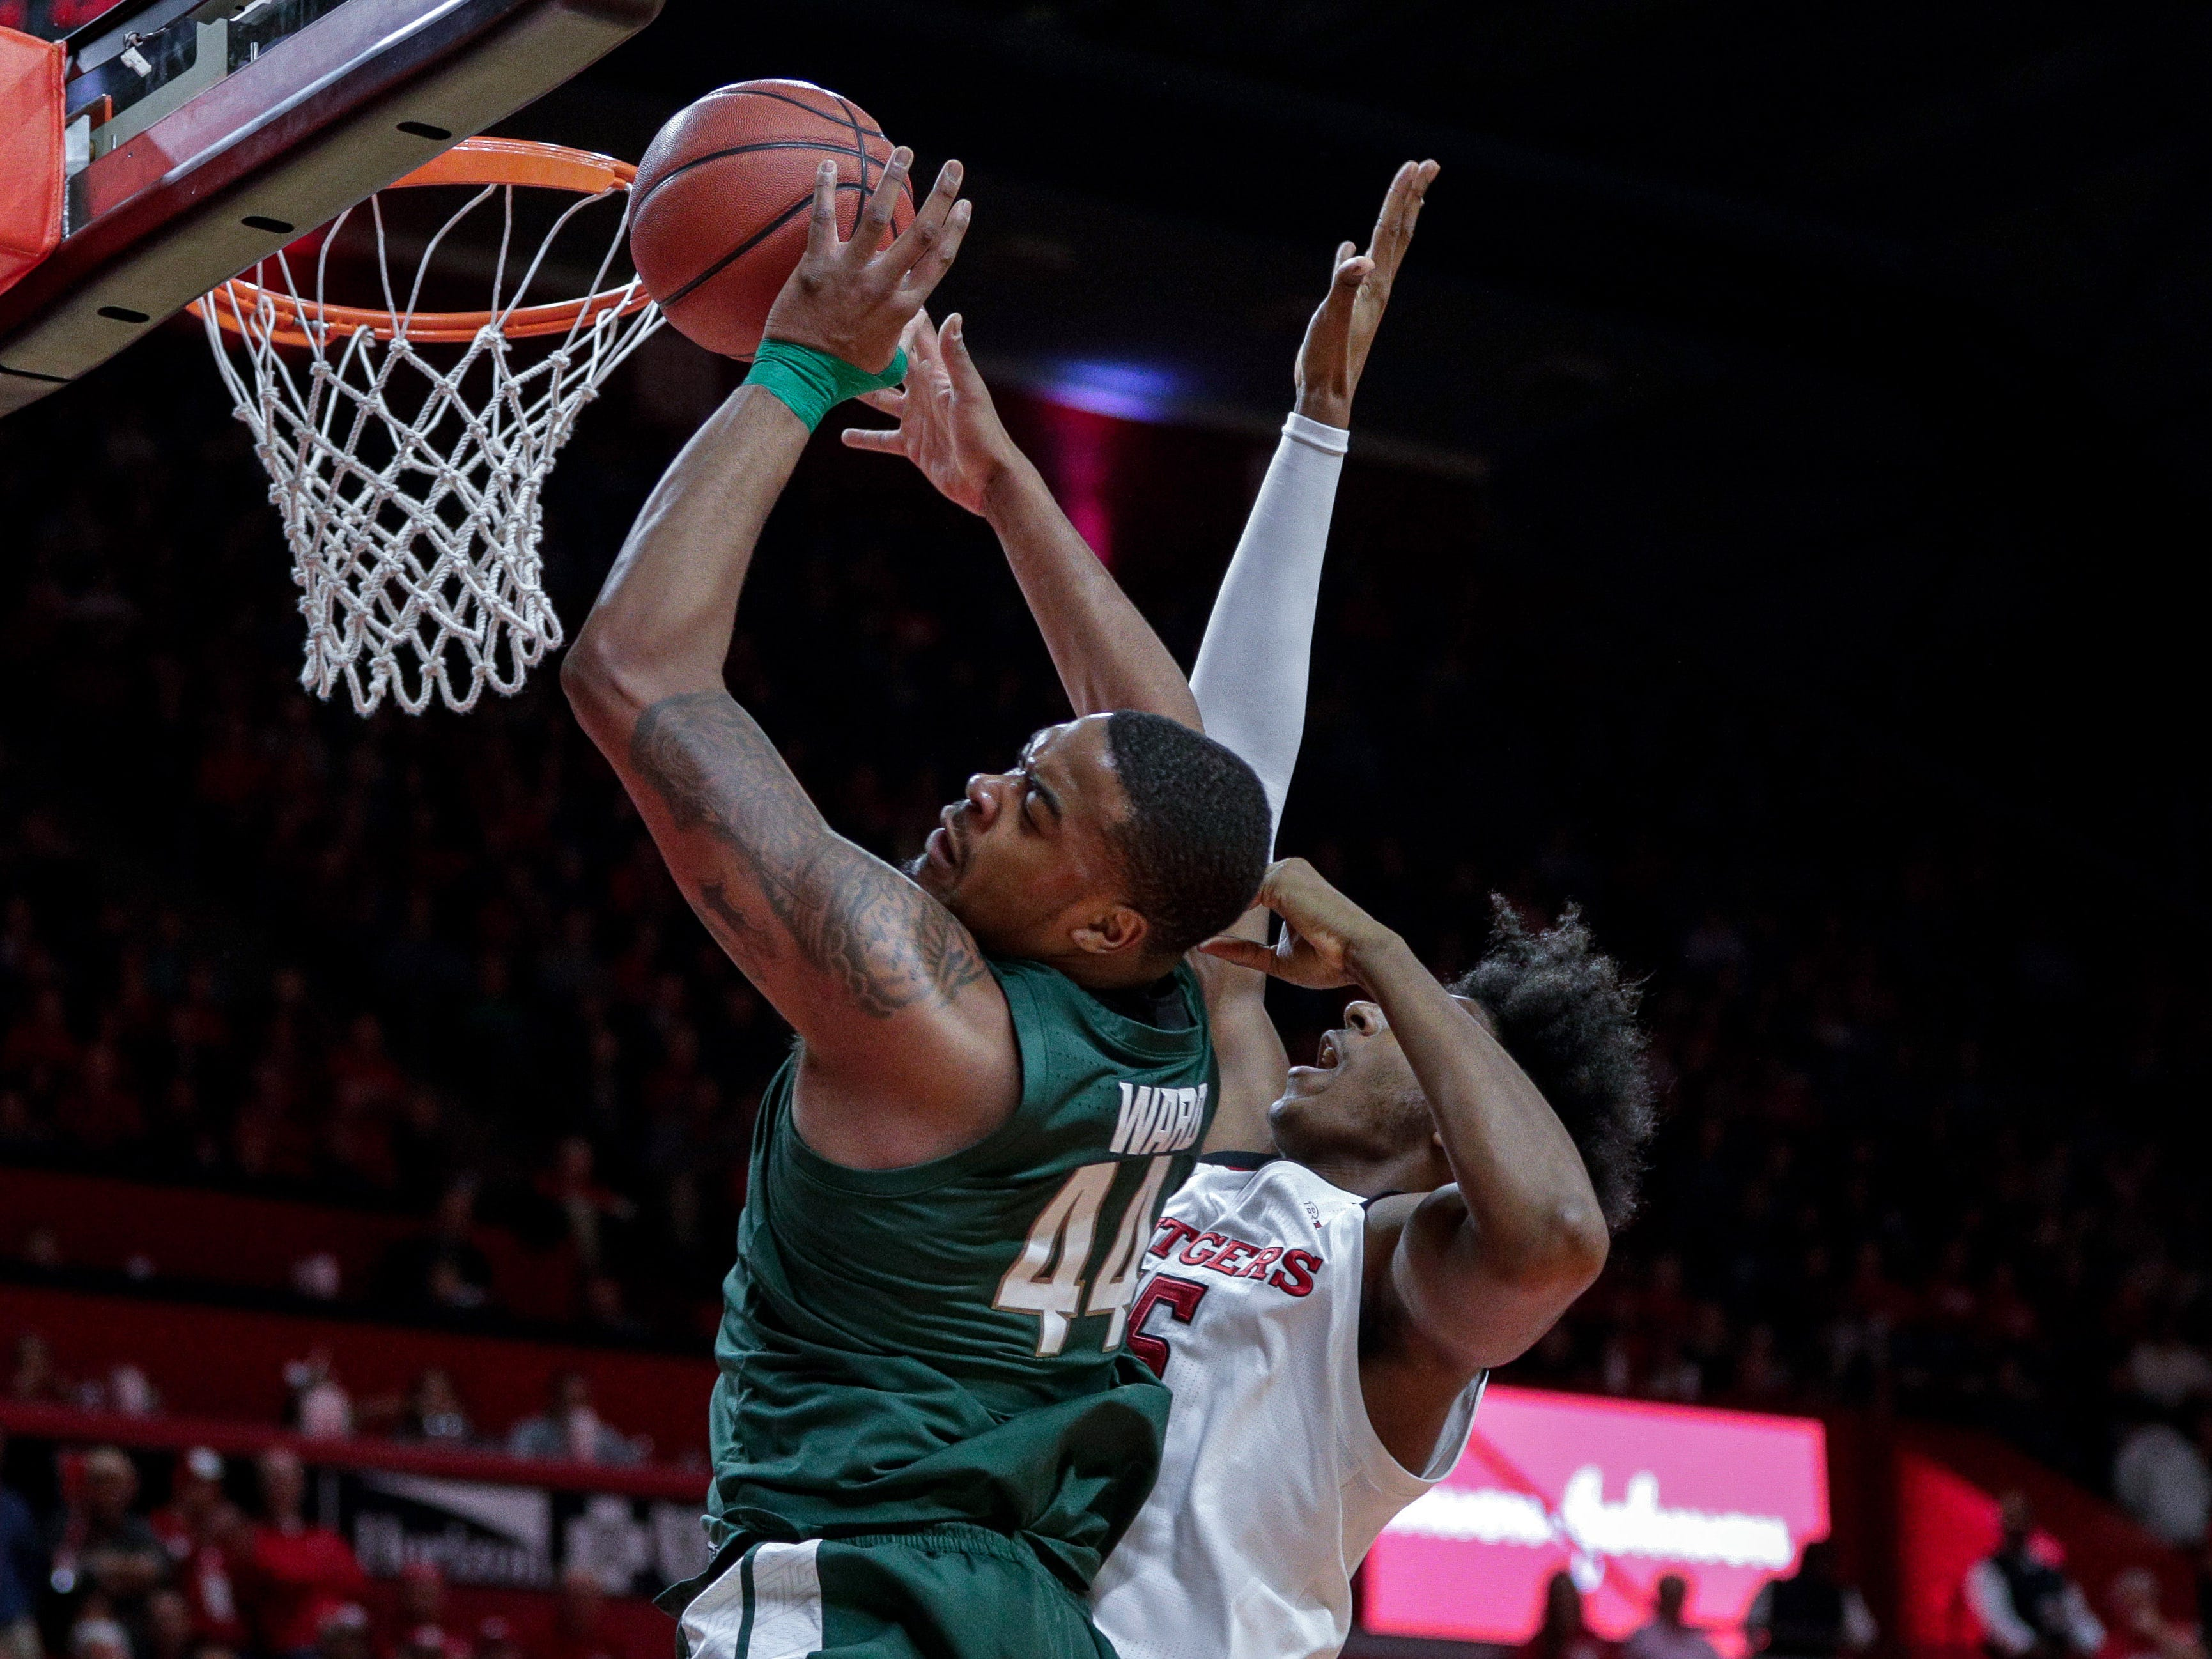 Michigan State Spartans forward Nick Ward (44) drives to the basket as Rutgers Scarlet Knights center Myles Johnson (15) defends during the first half at Rutgers Athletic Center (RAC).